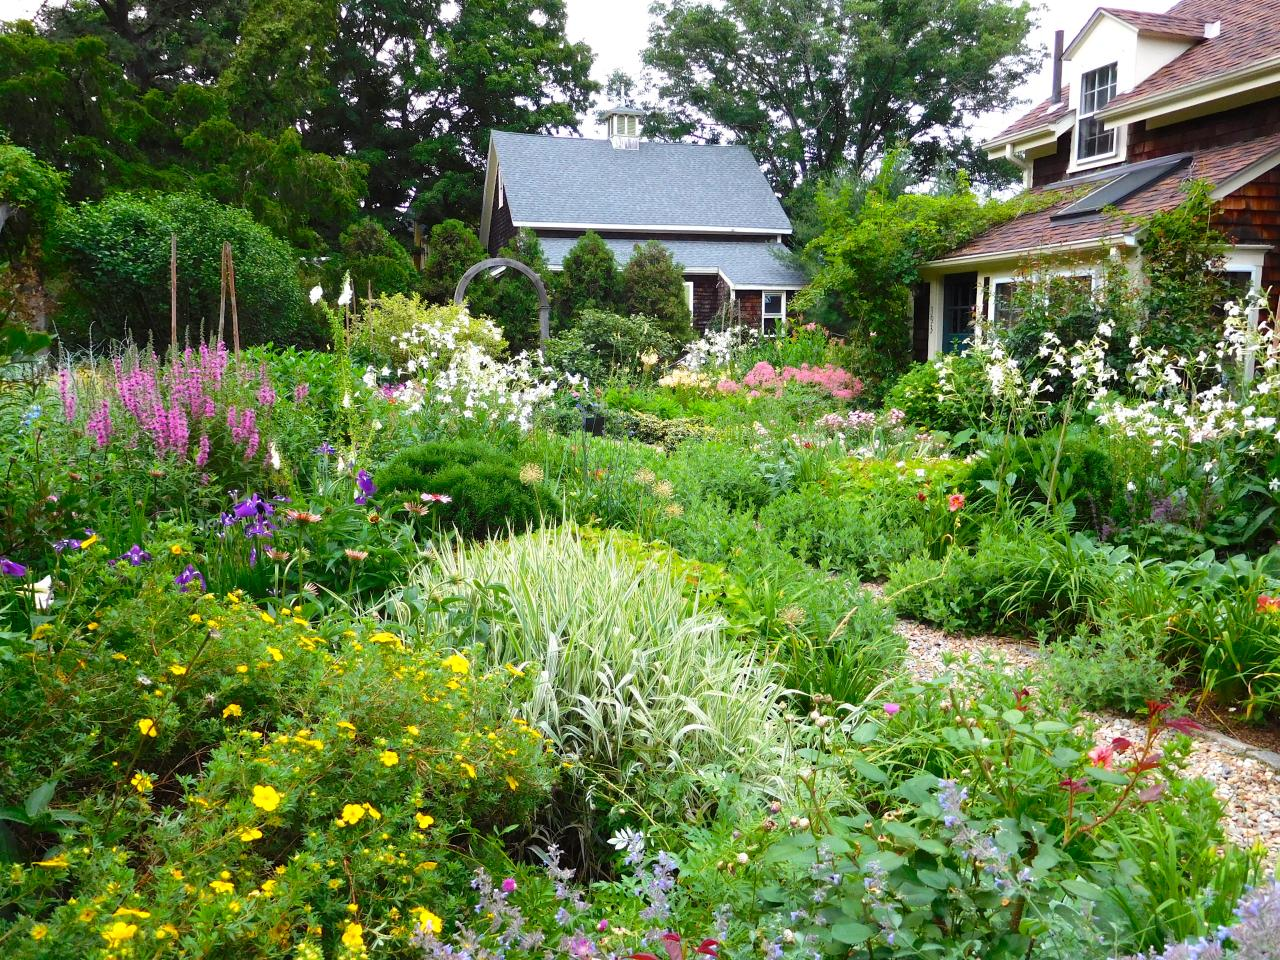 cottage garden design ideas hgtv ForCottage Garden Design